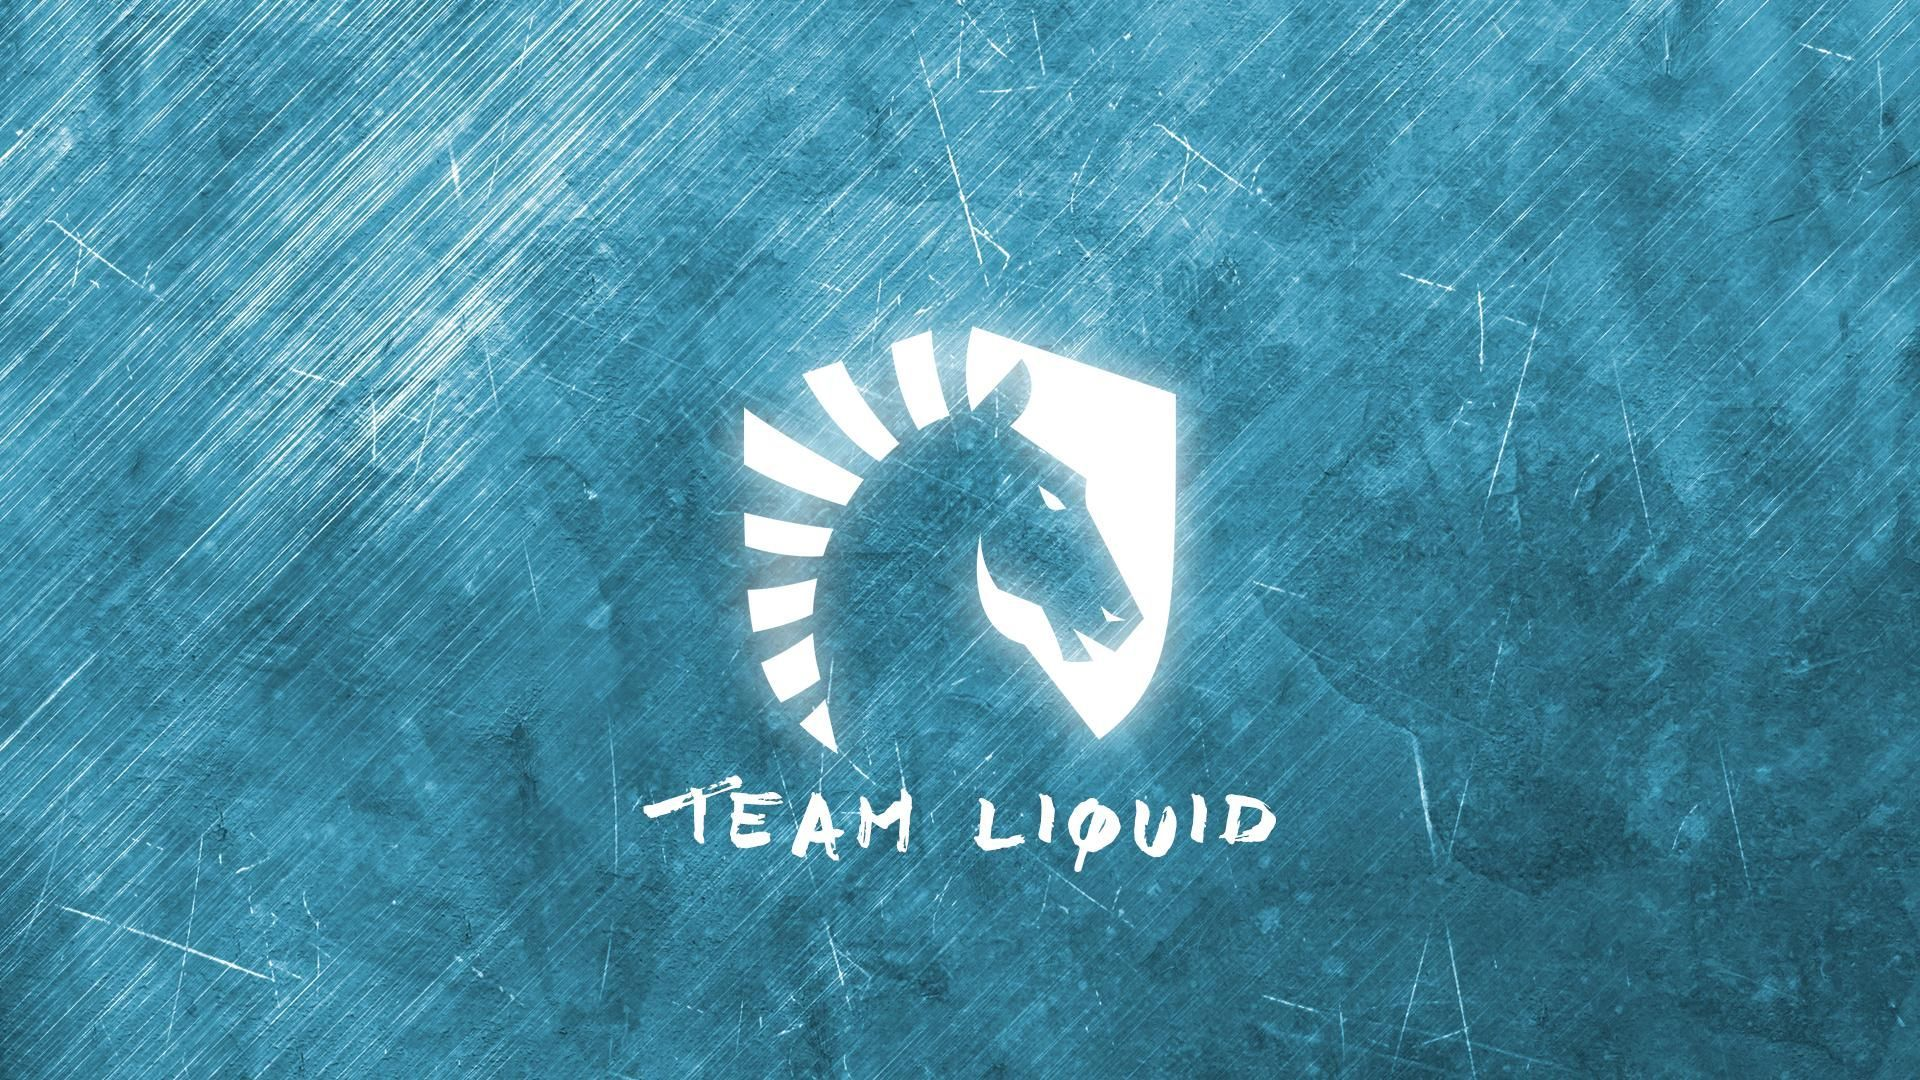 Pubg Hd Wallpaper 1920x1080 Need Iphone 6s Plus: Top Free Team Liquid Backgrounds